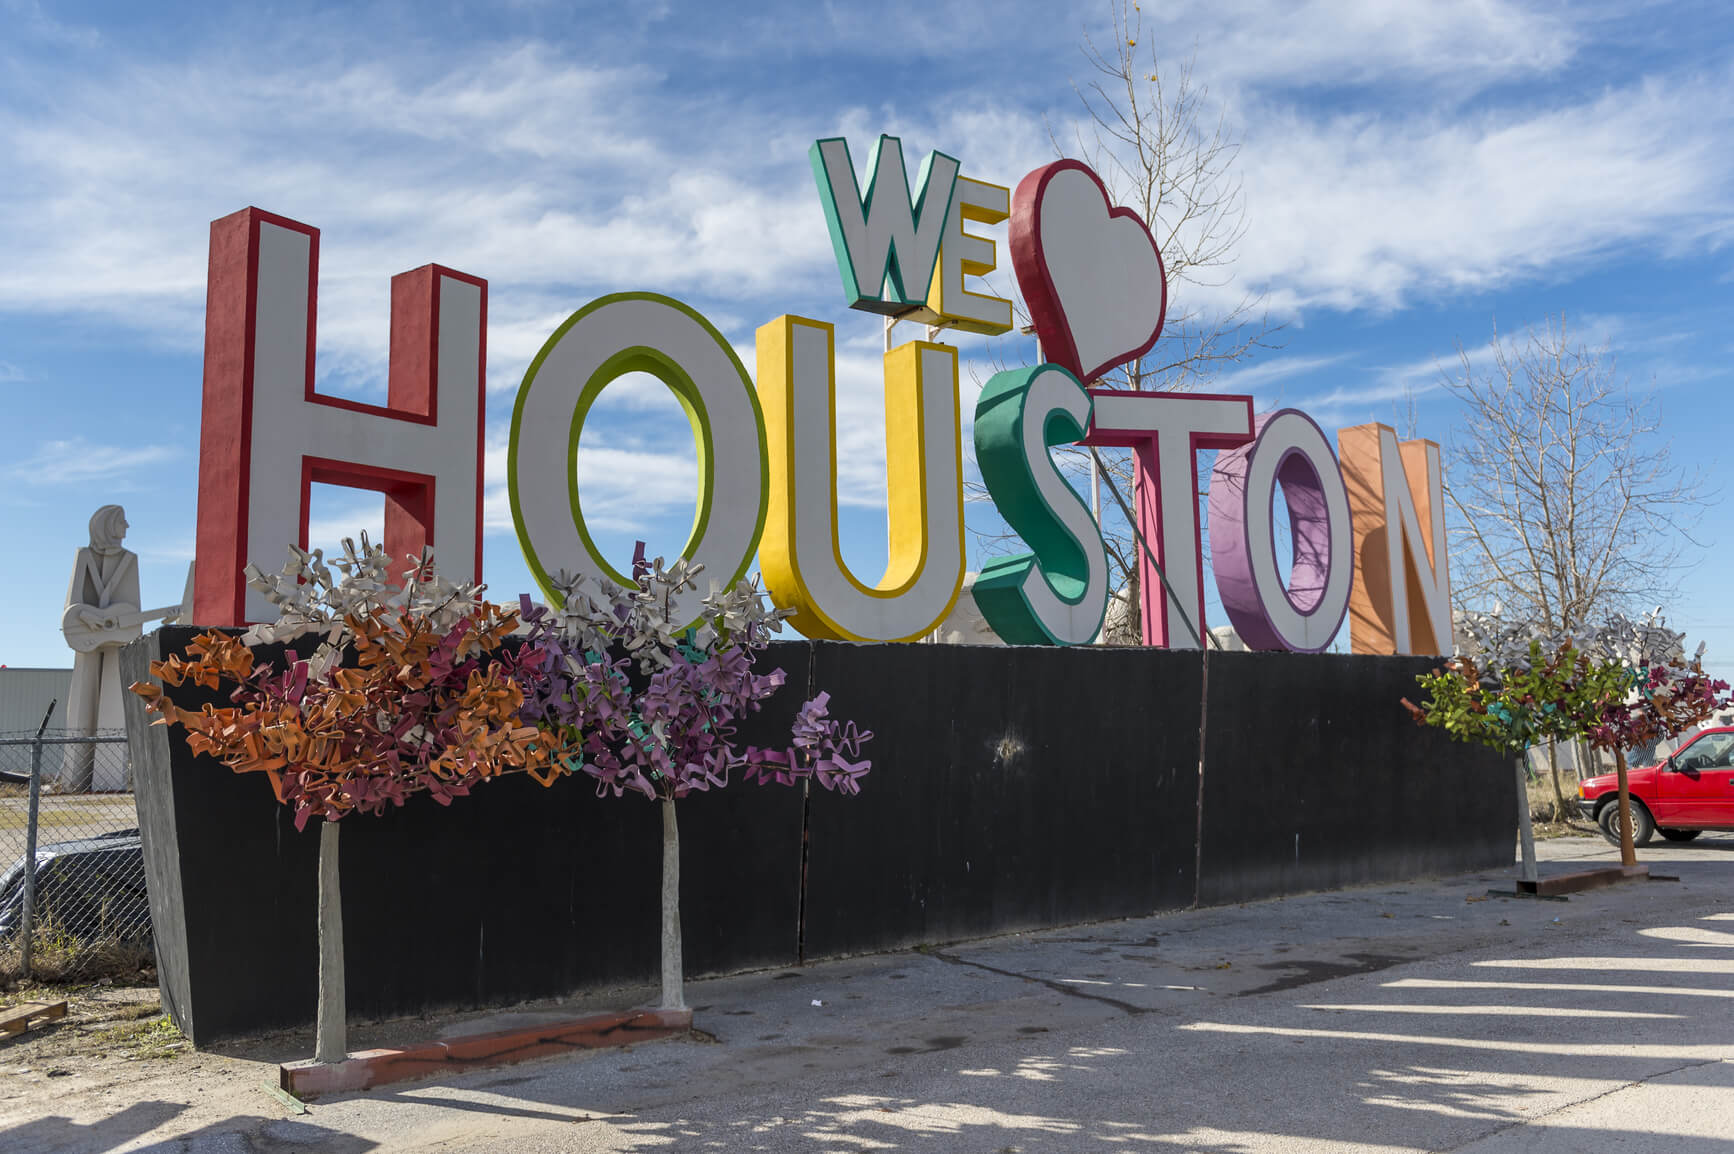 Non-stop from Manchester, UK to Houston, Texas for only £348 roundtrip